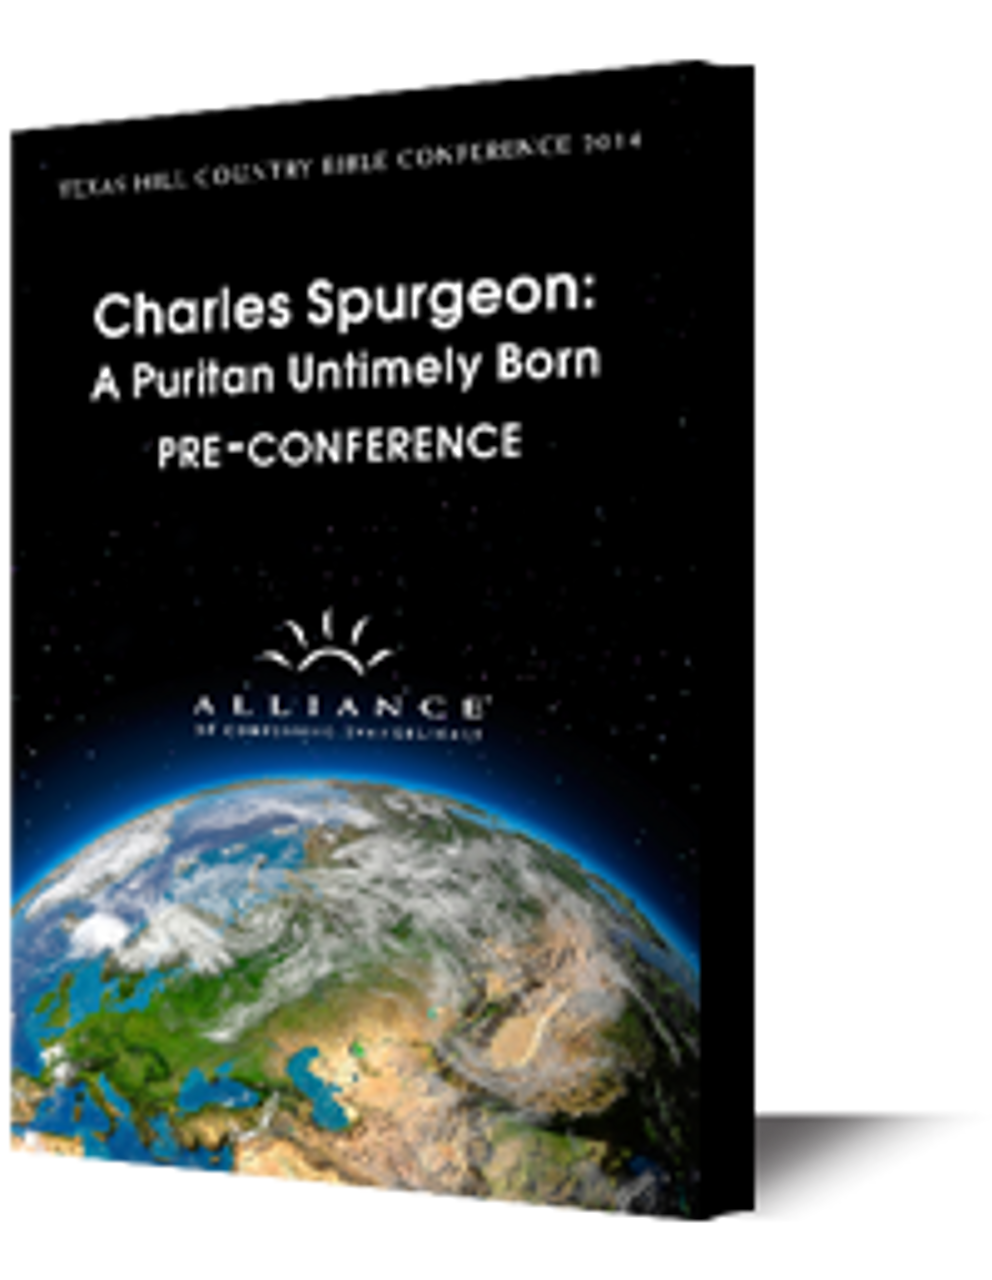 Charles Spurgeon: A Puritan Untimely Born (mp3 Disc)